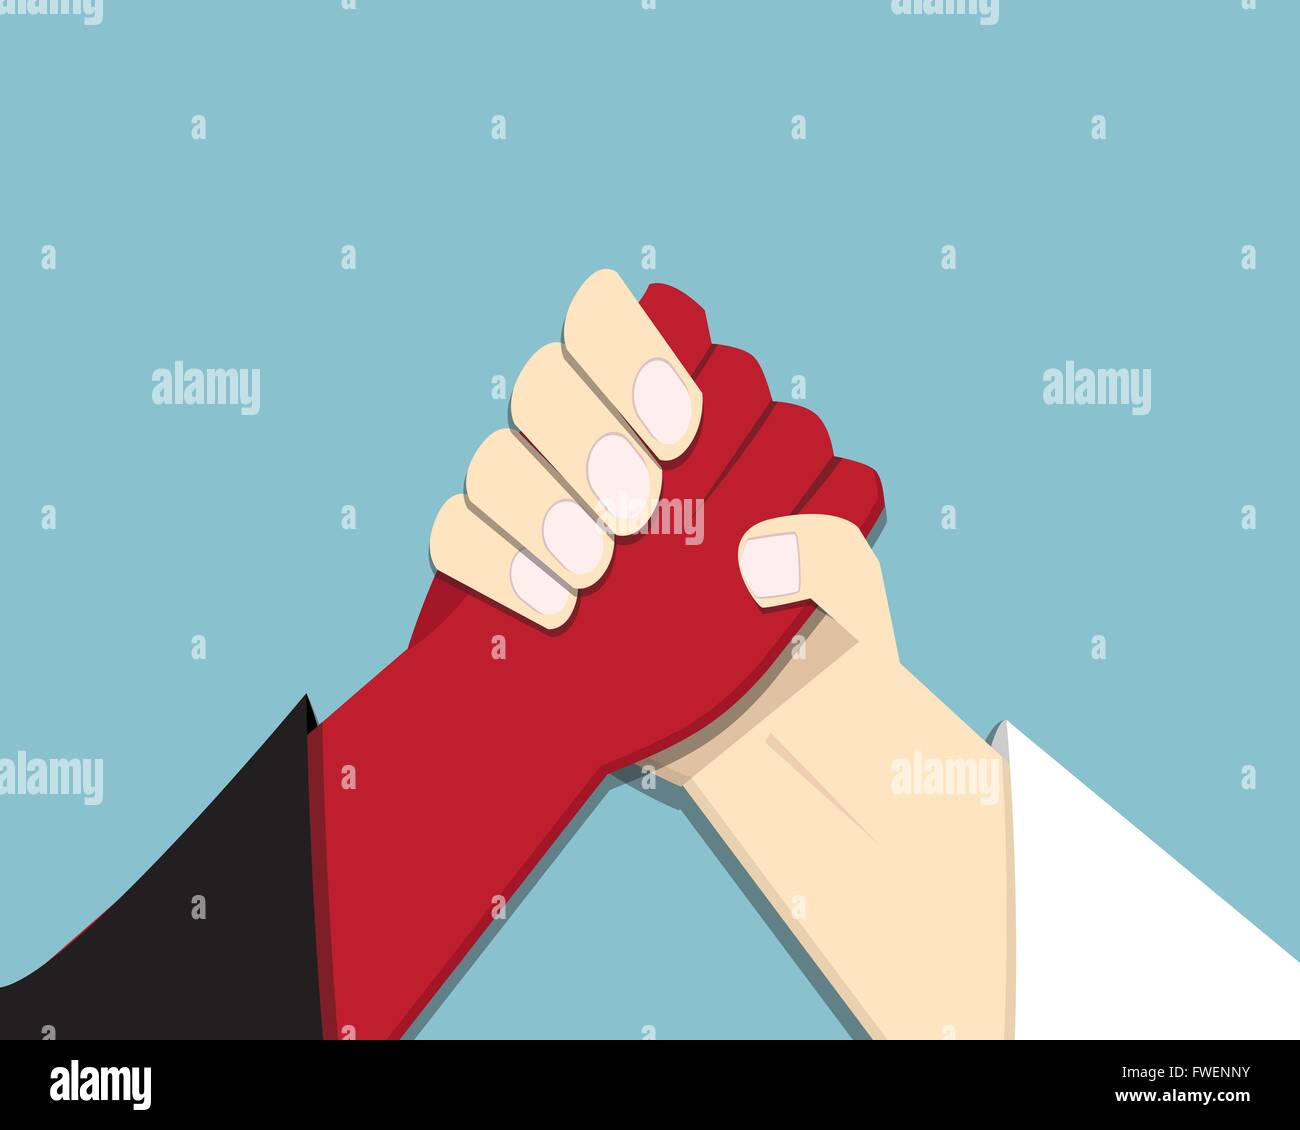 Evil vs God, armwrestling, promise, competition, vector - Stock Image